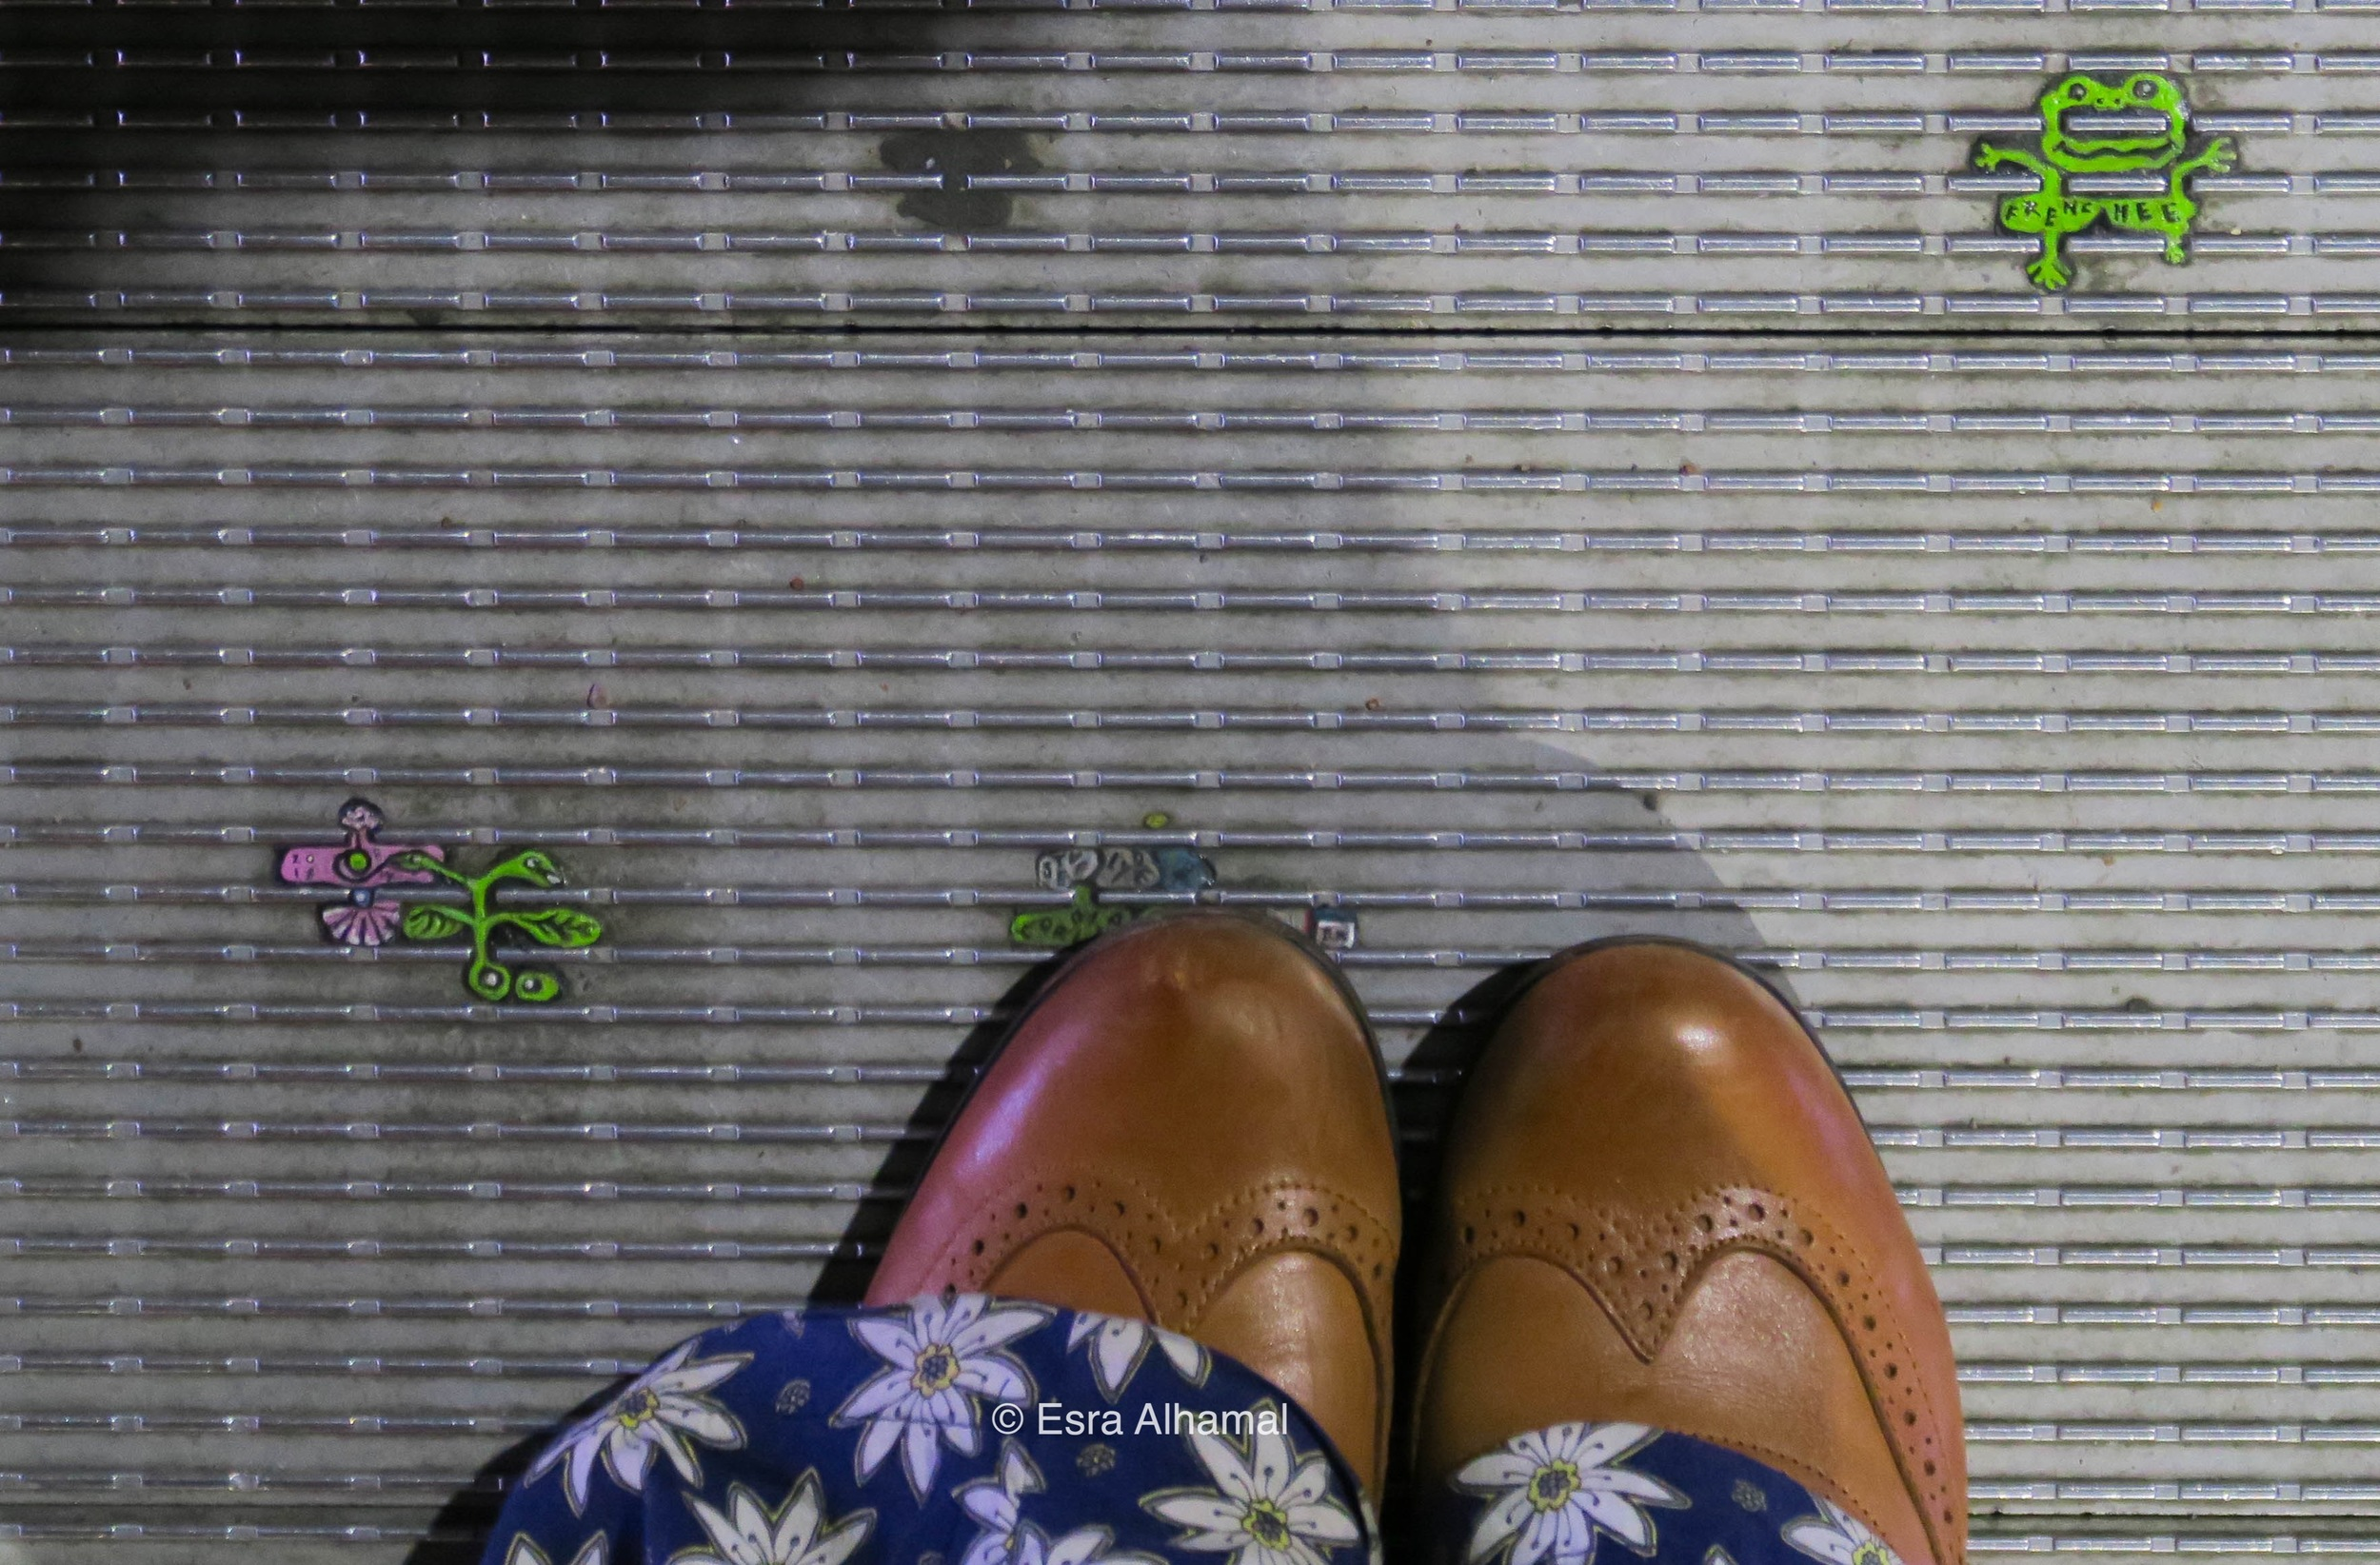 Look down and carefully at the bridge you are walking on, London